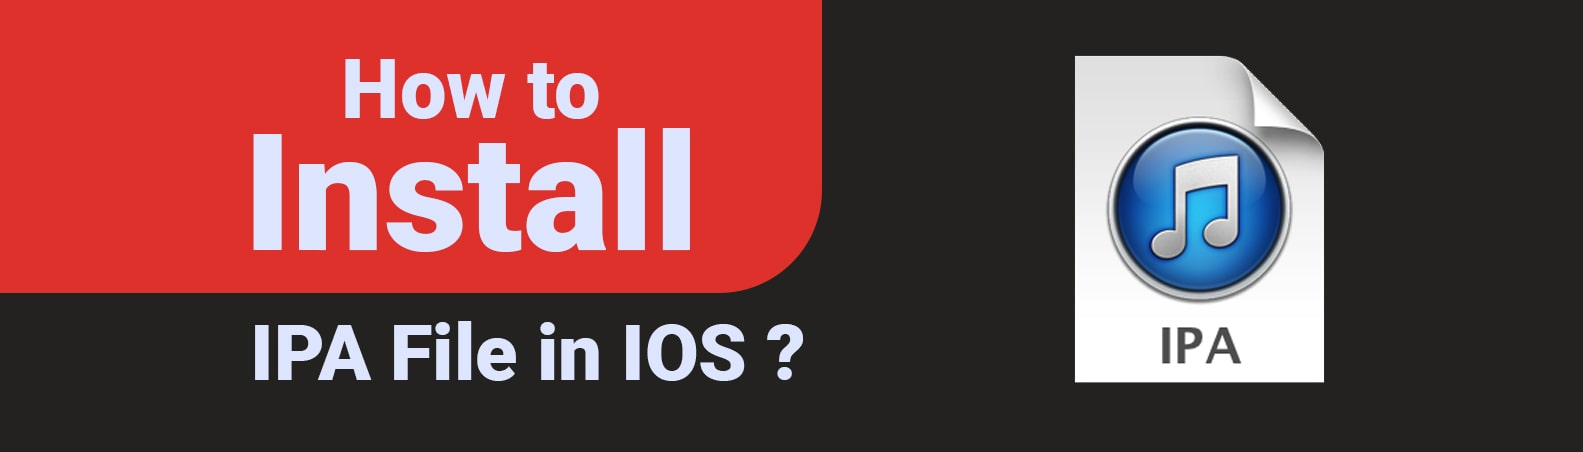 How to Install IPA File in IOS-min